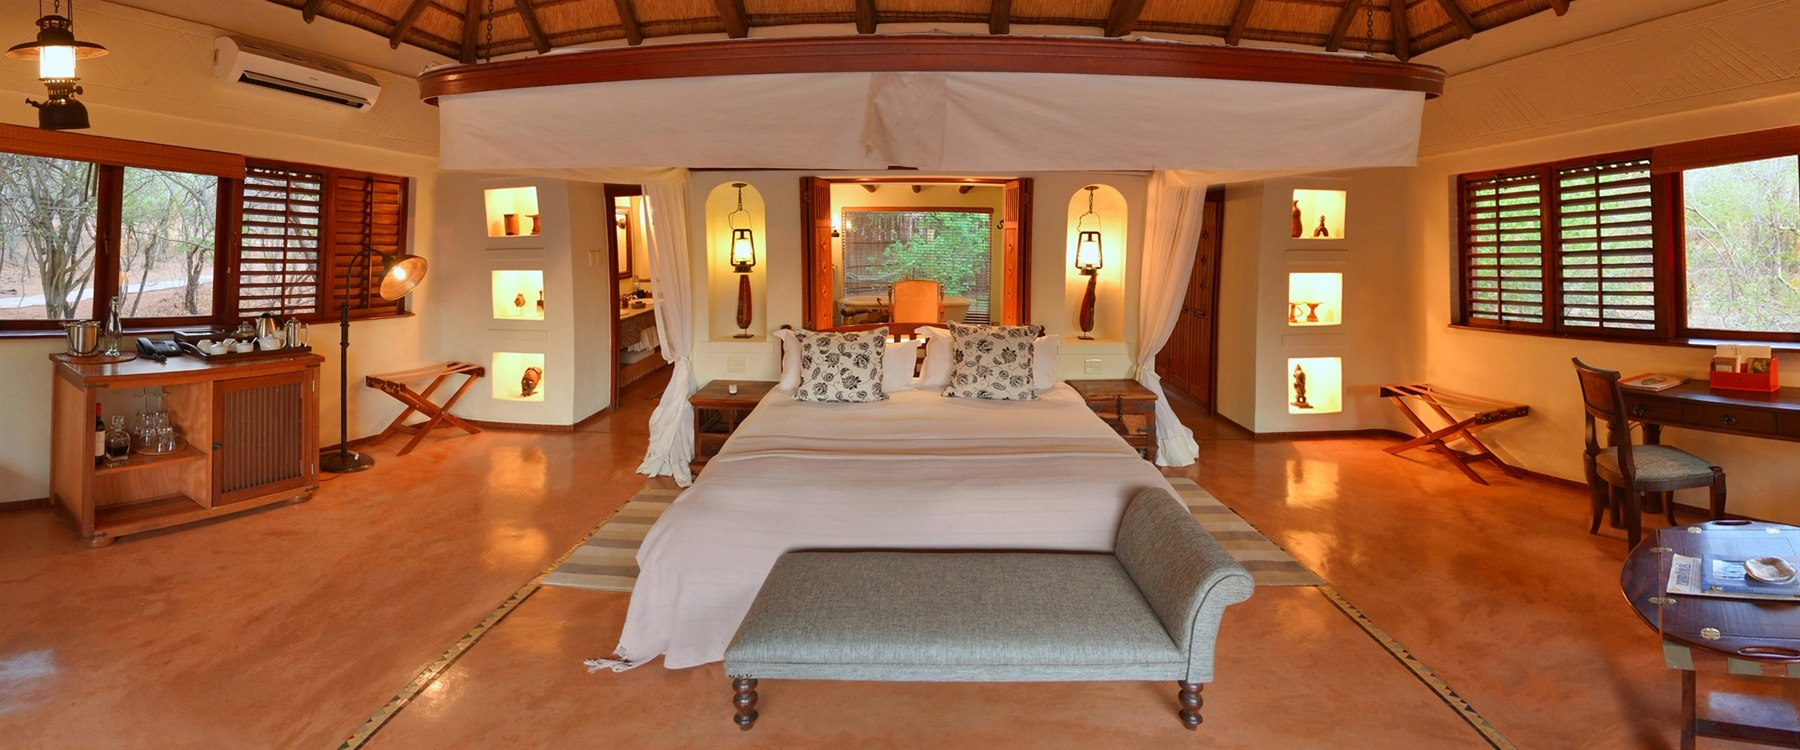 Bedroom at Sanctuary Chobe Chilwero